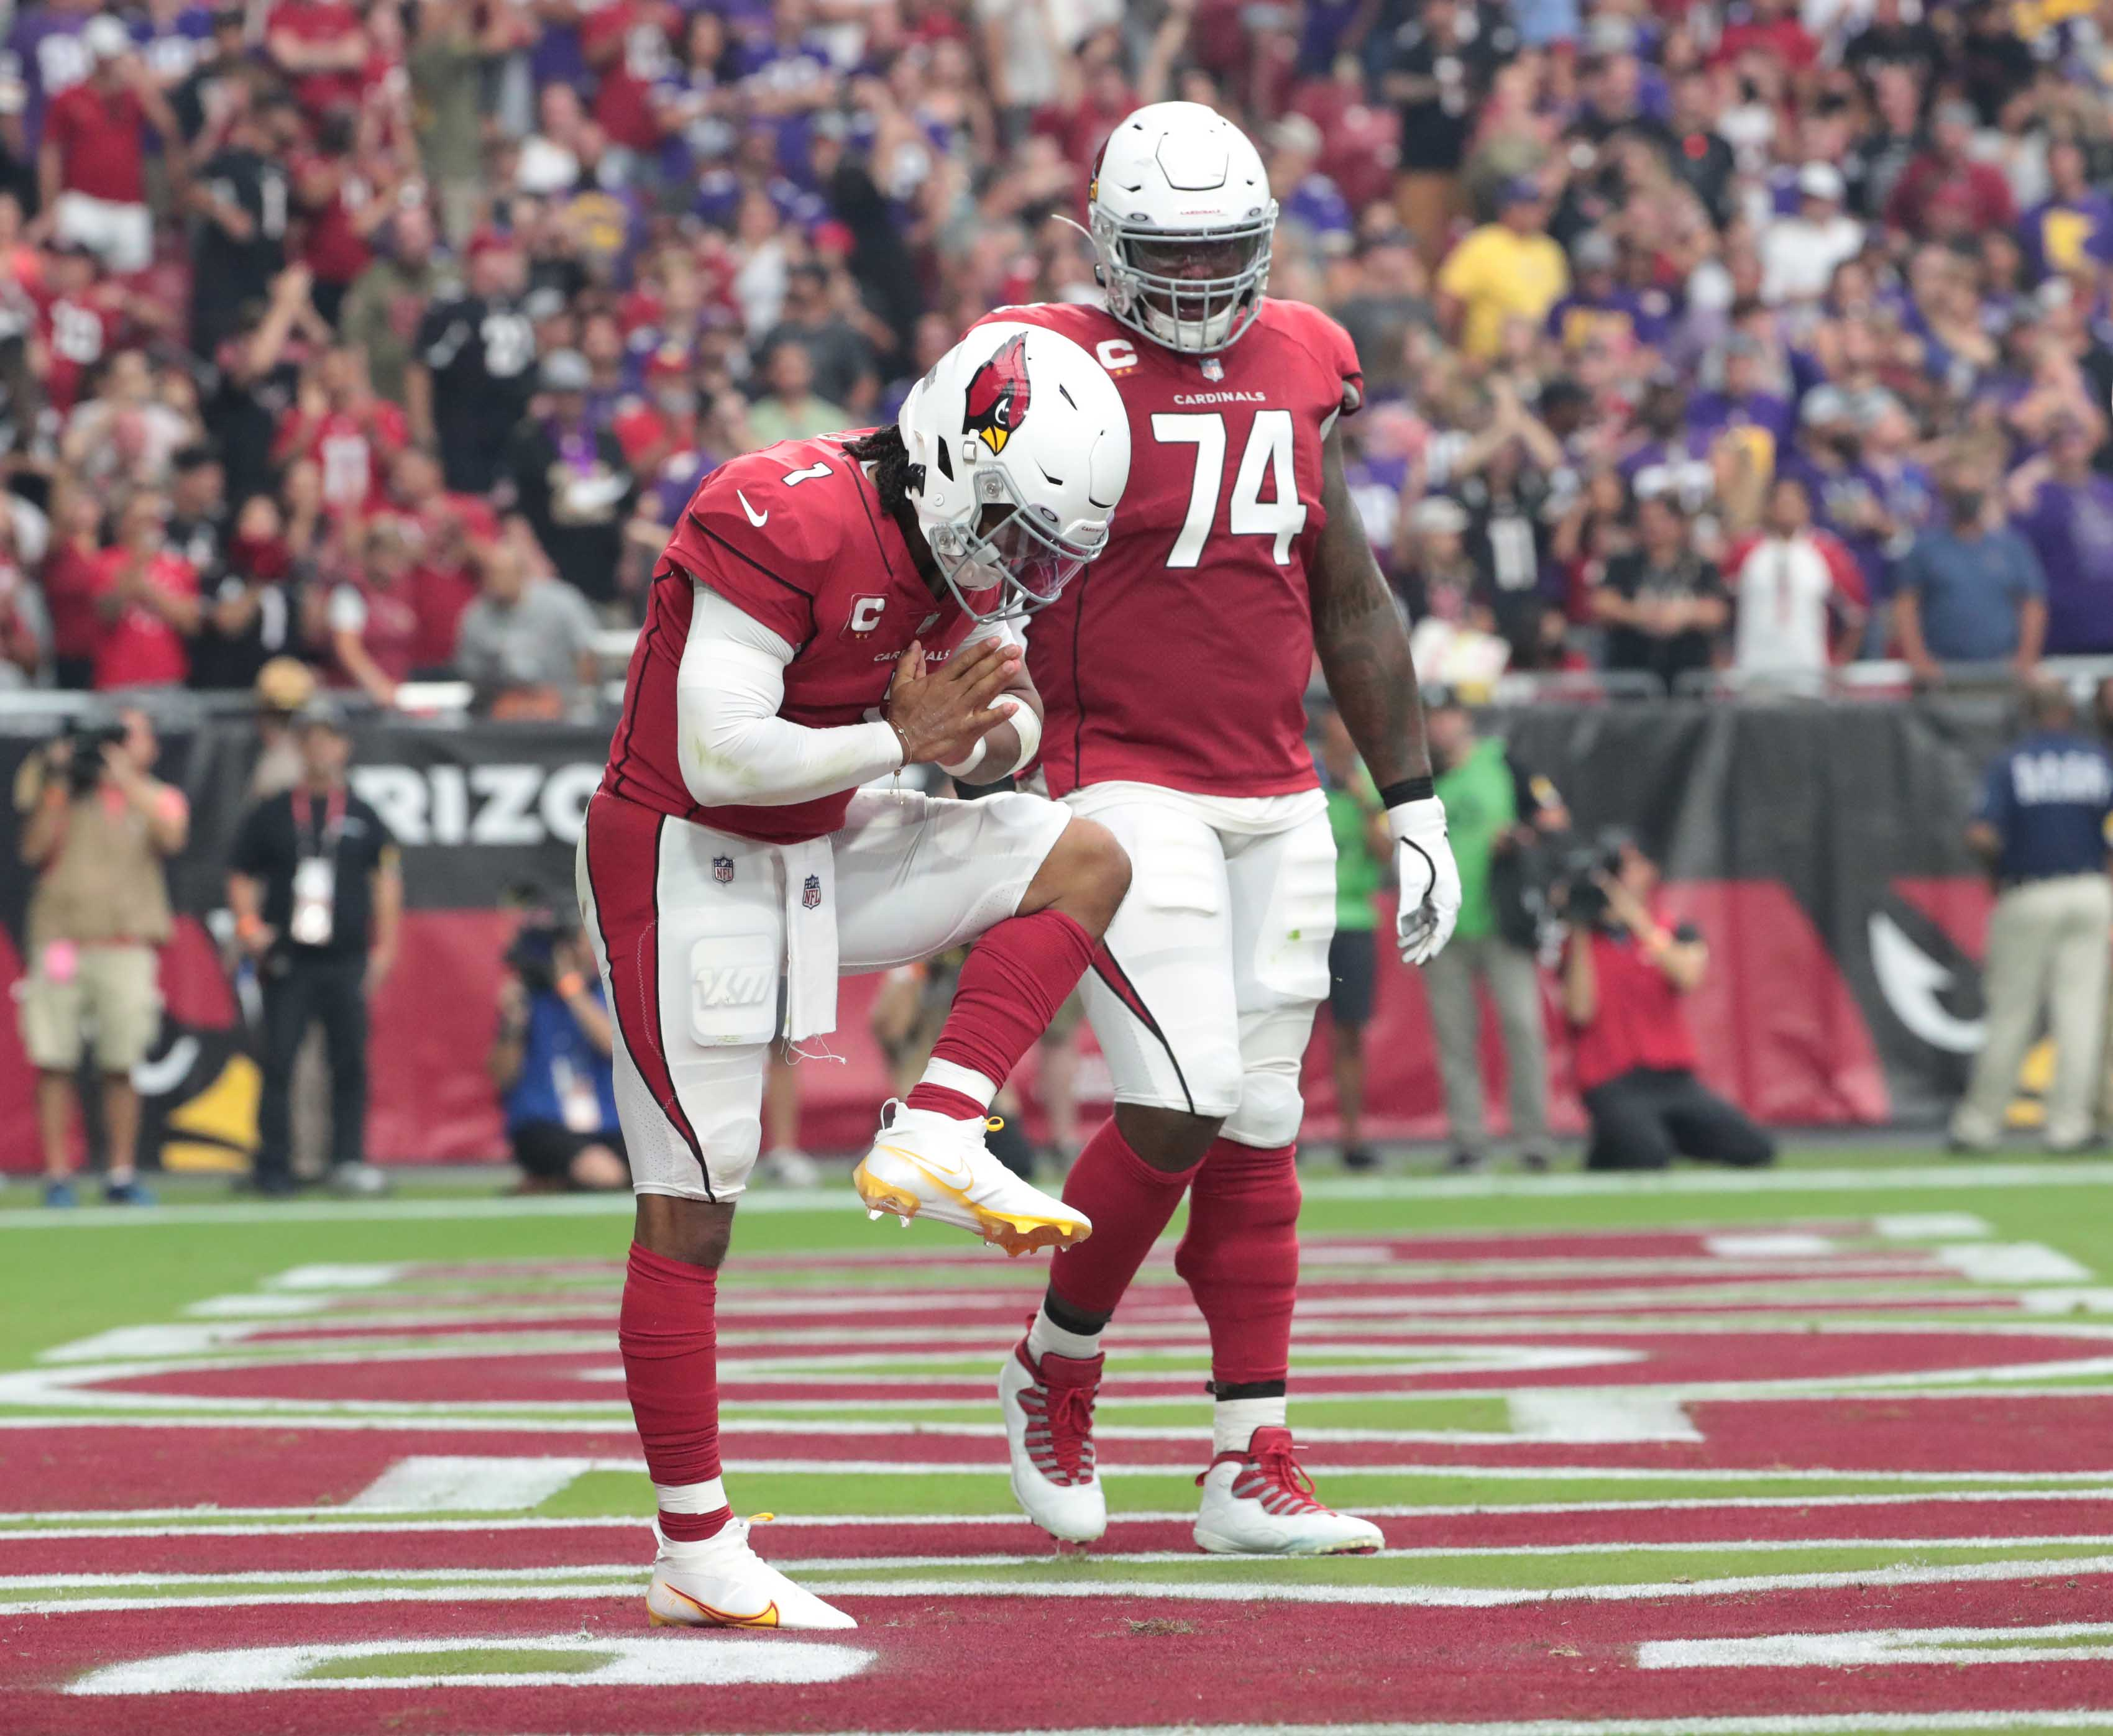 Arizona Cardinals quarterback Kyler Murray (1) bows after a touchdown run against the Minnesota Vikings during the second quarter in Glendale, Ariz. Sept. 19, 2021.